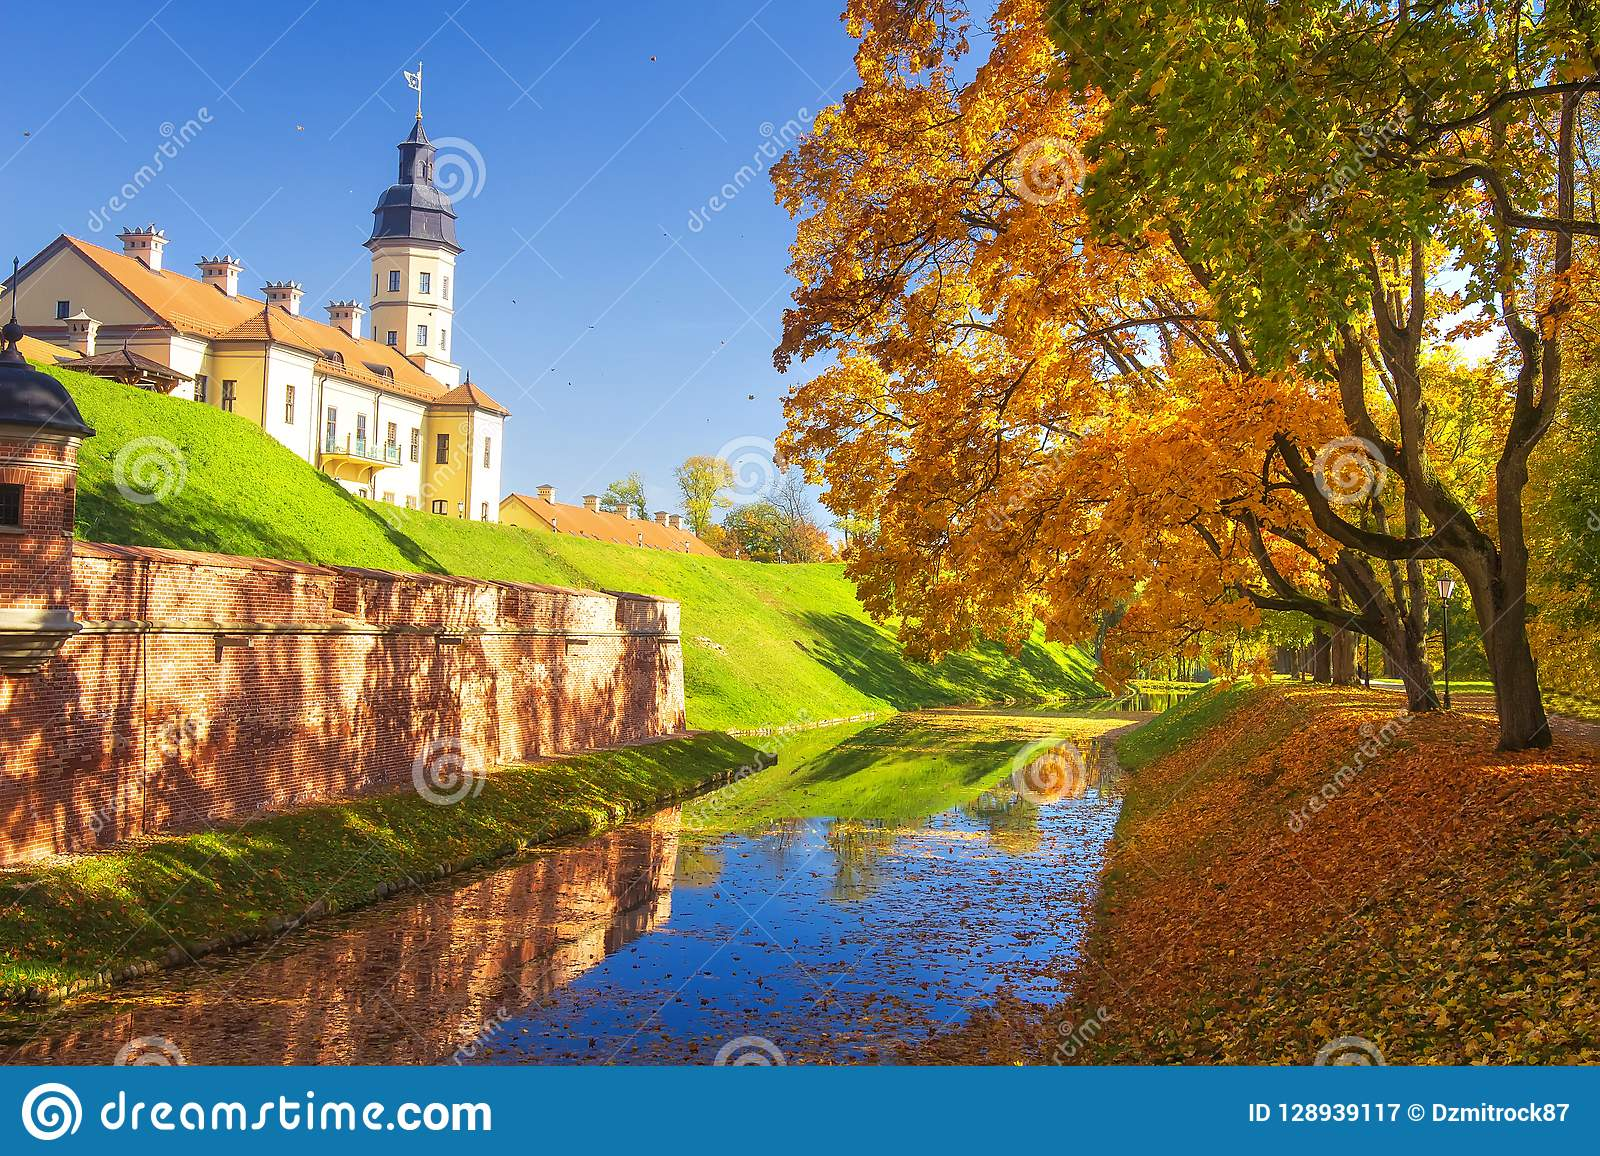 Nesvizh castle at autumn sunny clear day. Colourful yellow and red trees, blue sky, green grass, falling autumnal leaves